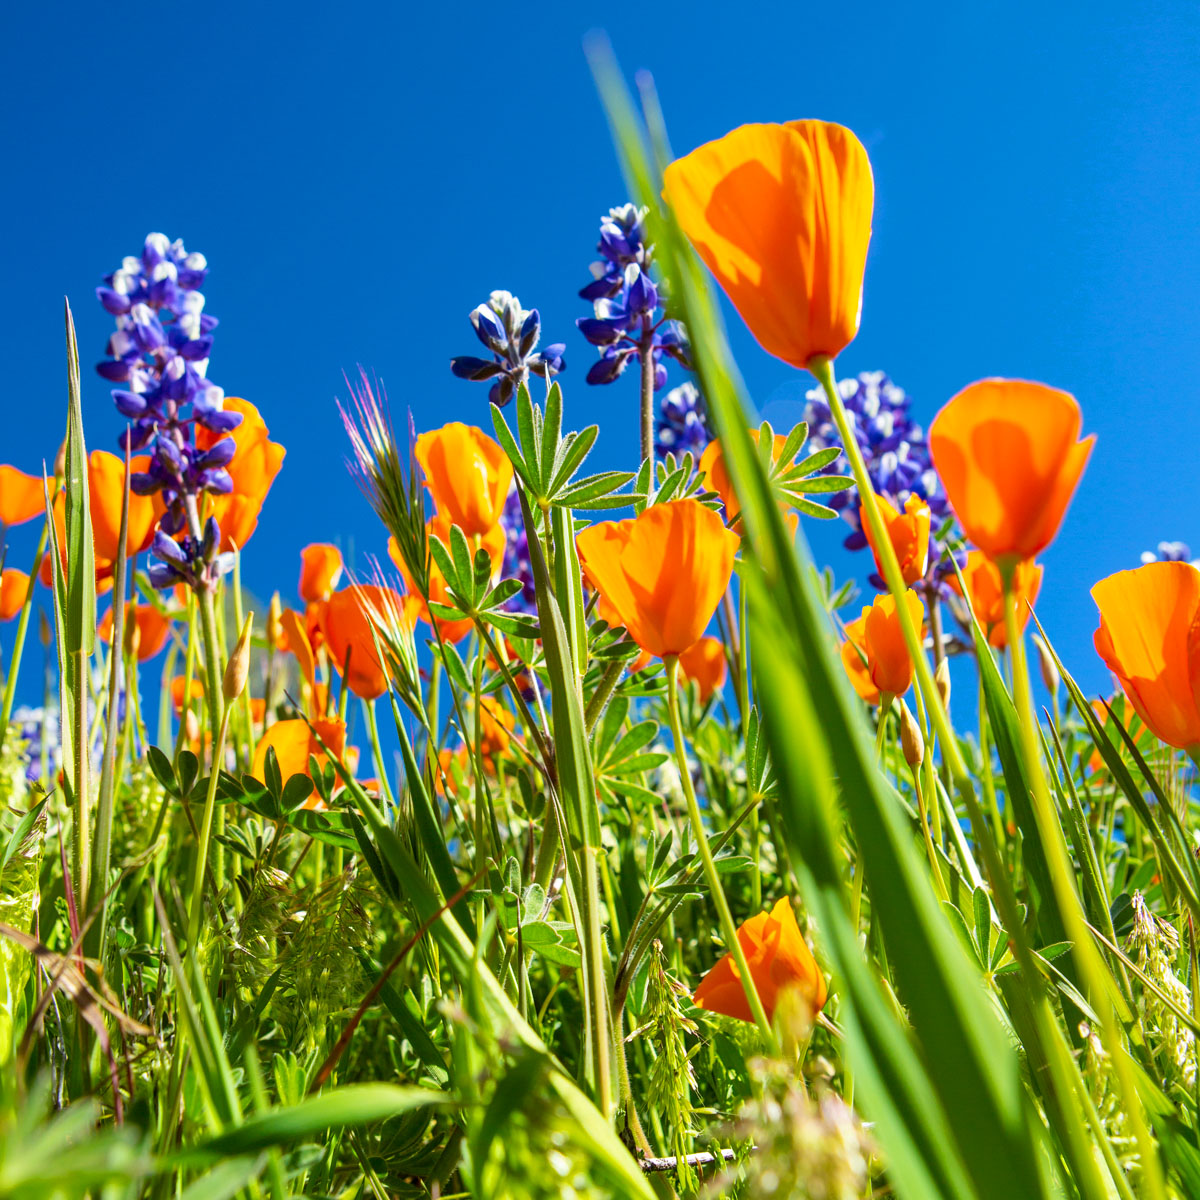 Bugs-eye-view photograph of poppies and lupine